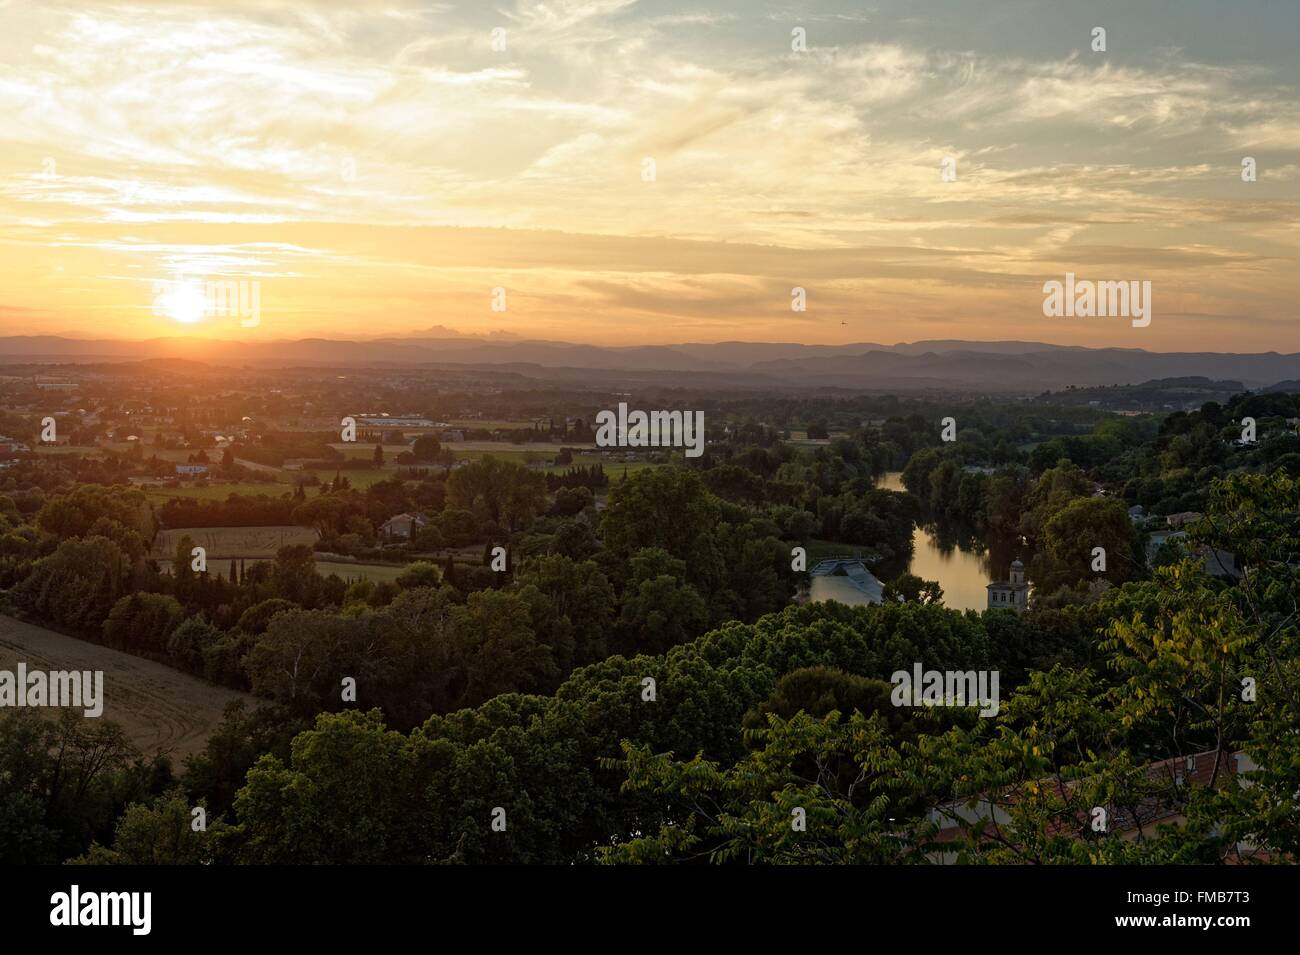 France, Herault, Beziers, View of Orb River - Stock Image